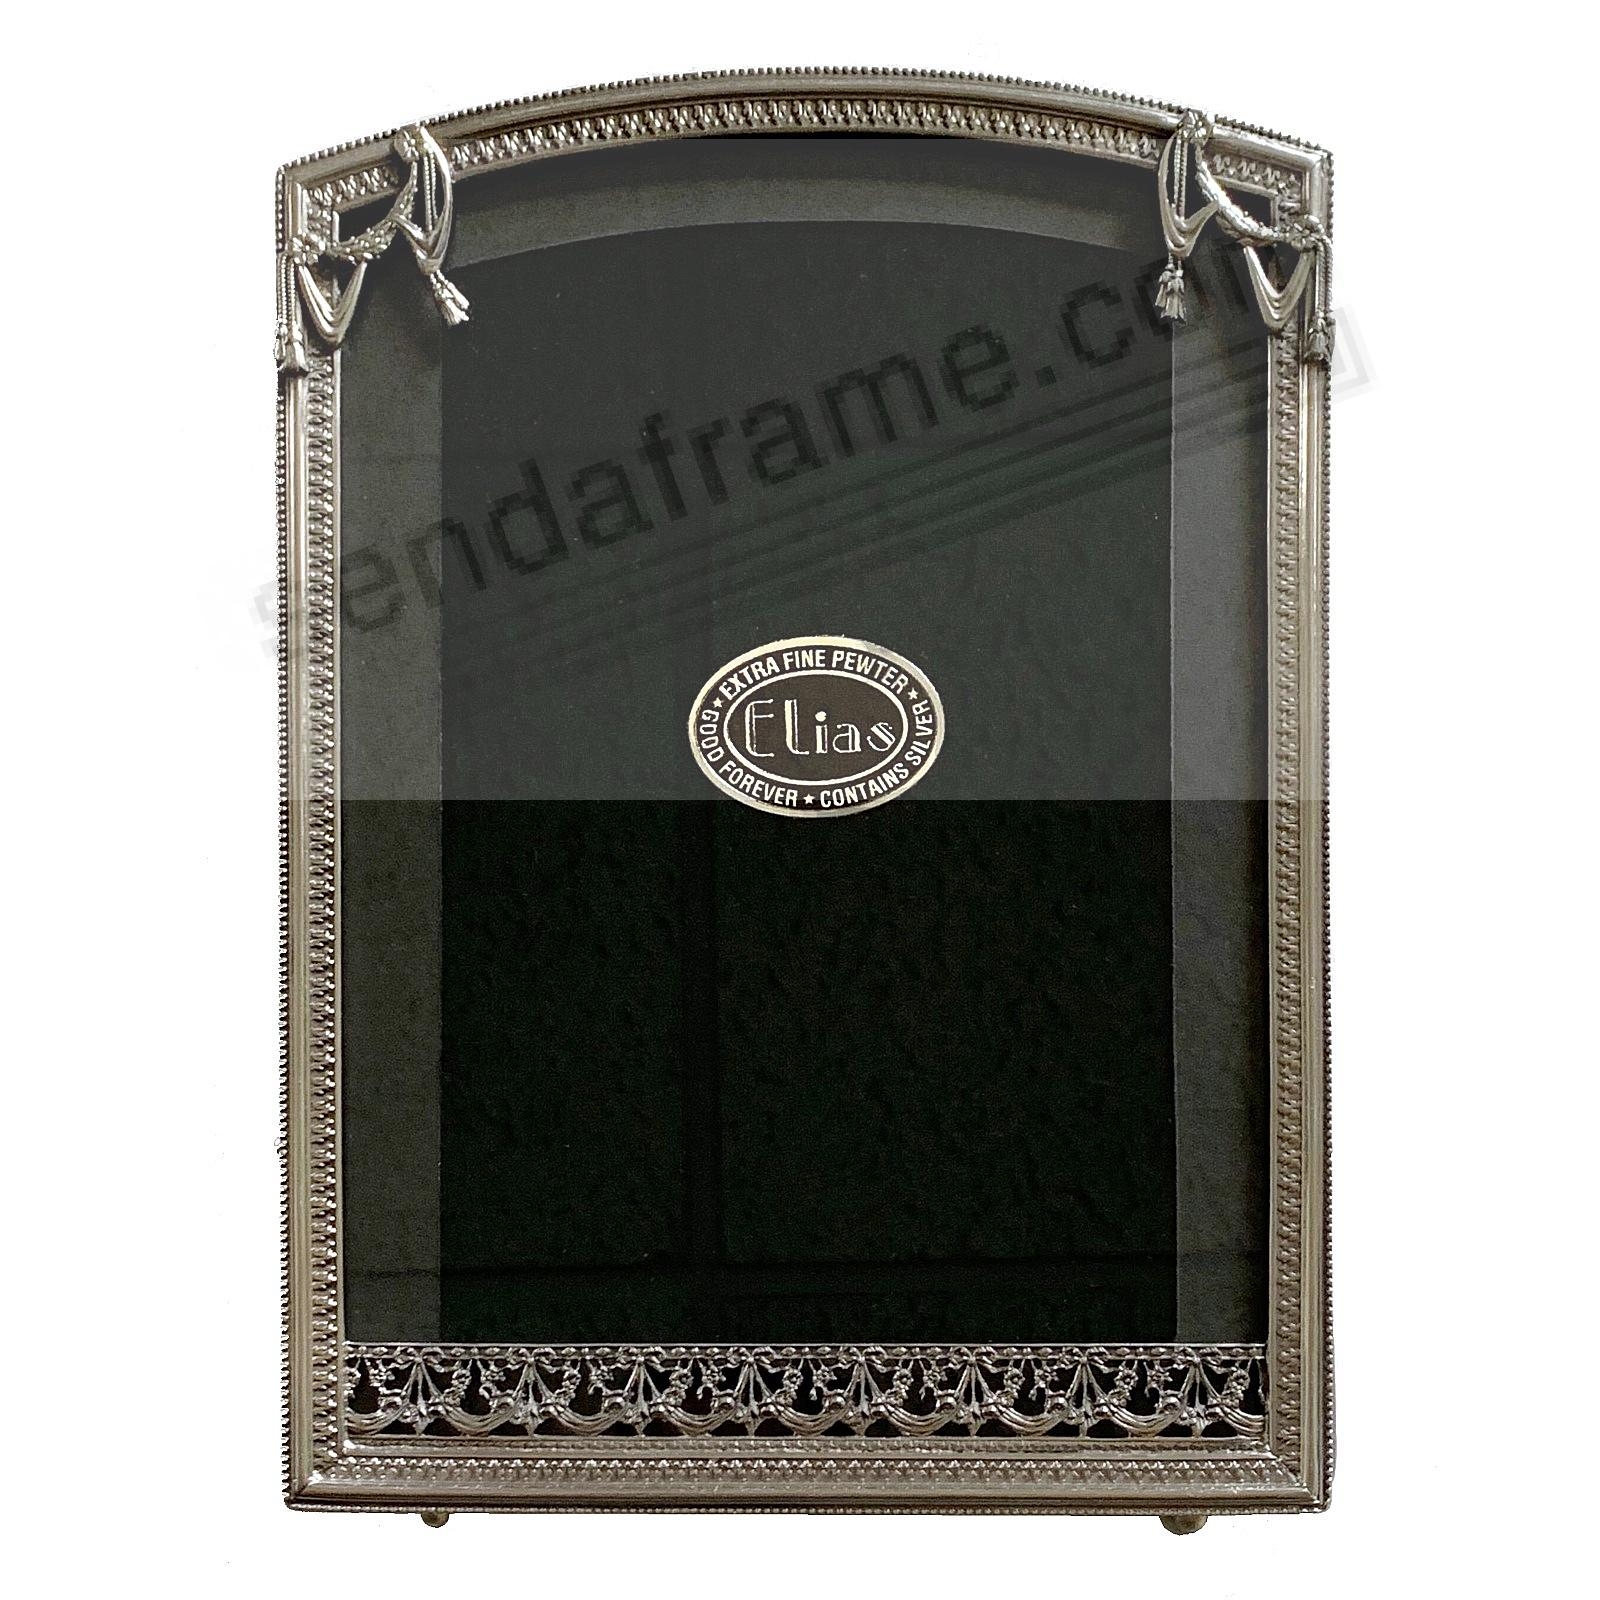 BROADWAY STAGE in fine pewter by Elias Artmetal®